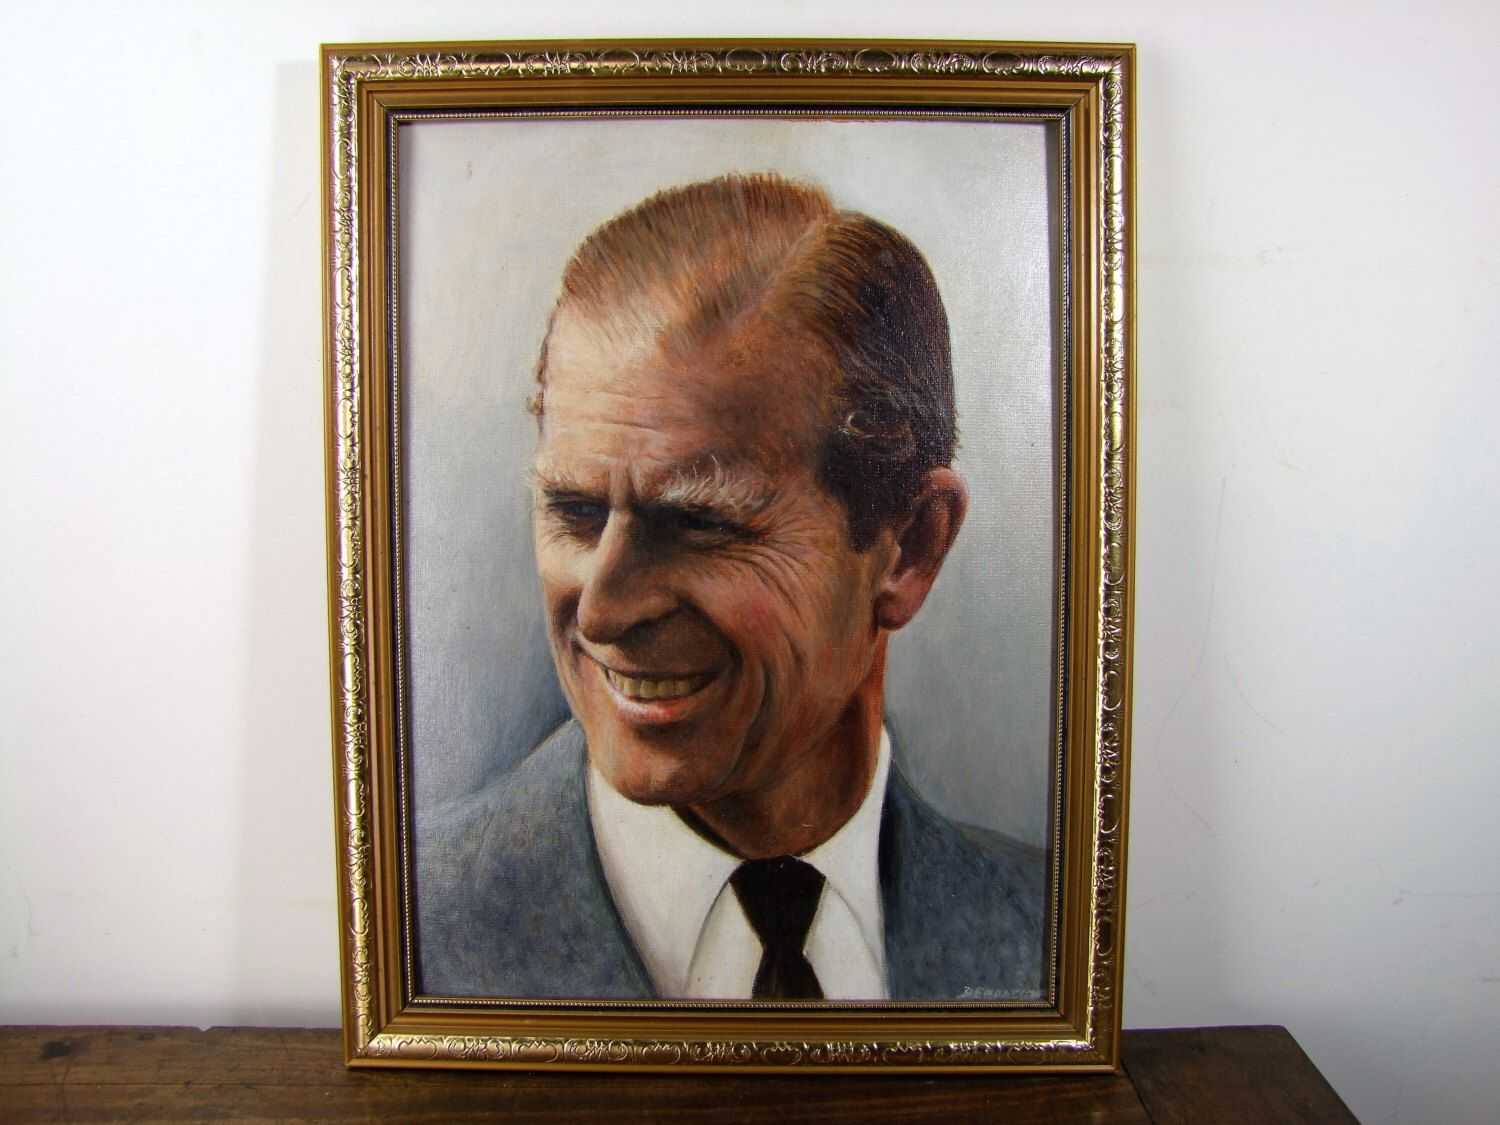 Prince Philip DUKE OF EDINBURGH Incredible Original Vintage Oil Painting Portrait. Investment Piece. English Royal Family. by BeauChateauBoutique on Etsy https://www.etsy.com/listing/479068556/prince-philip-duke-of-edinburgh